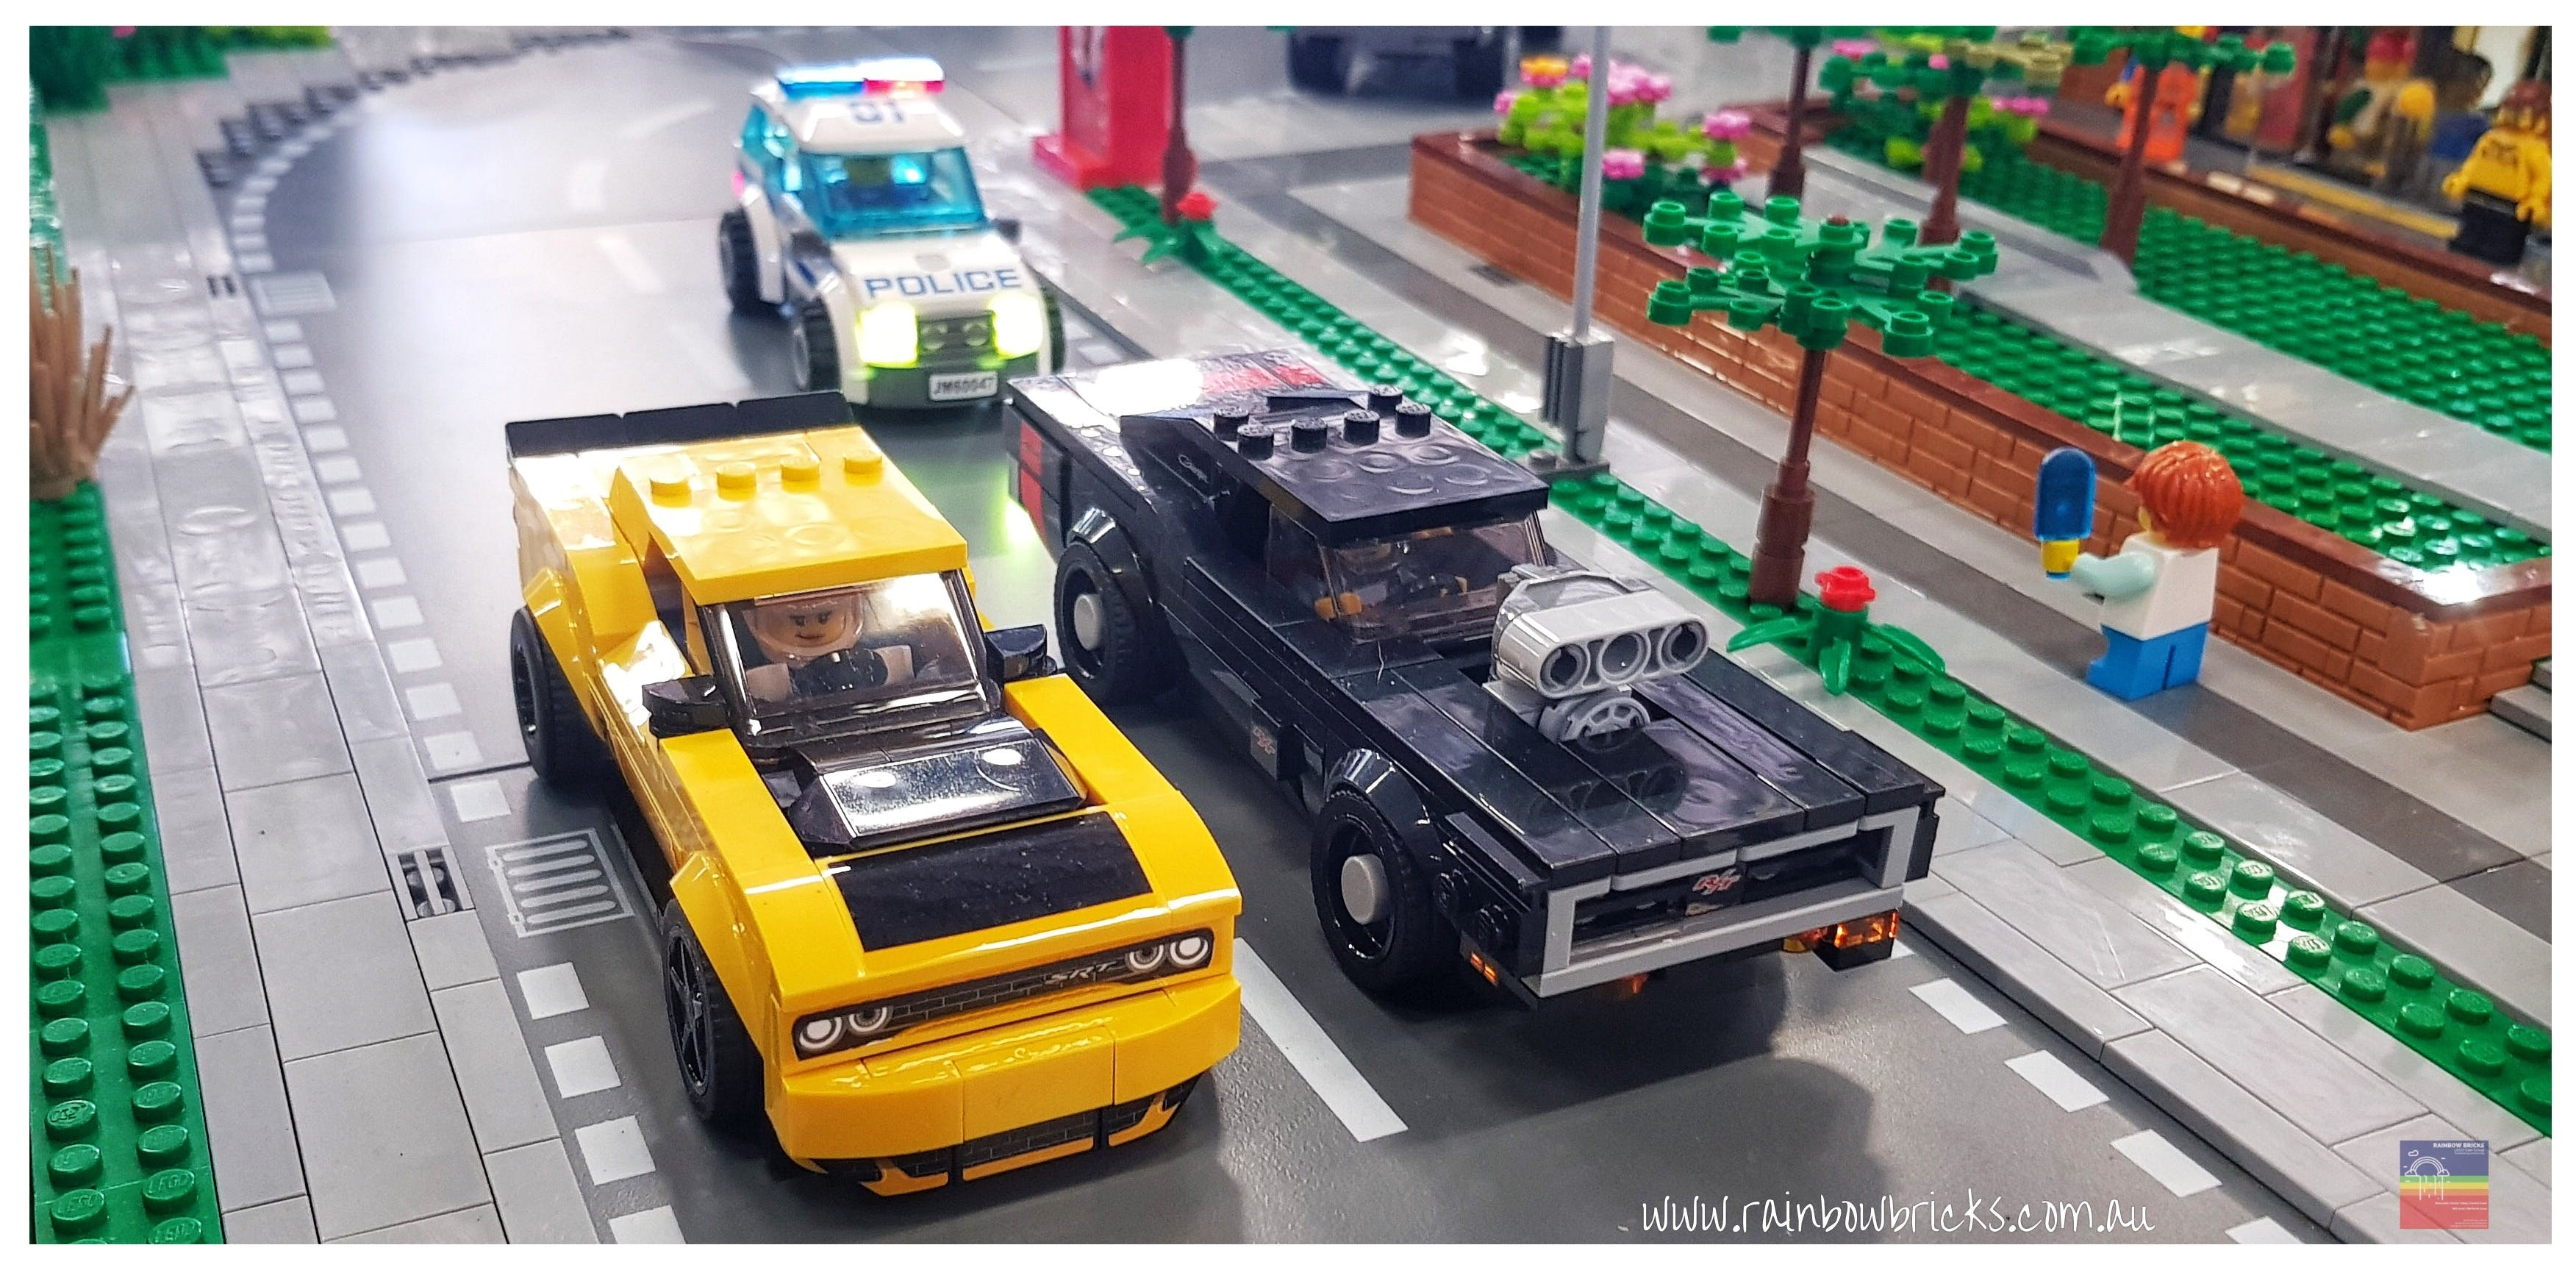 Brickfest at The Bay A Lego Fan Event - Accommodation Guide